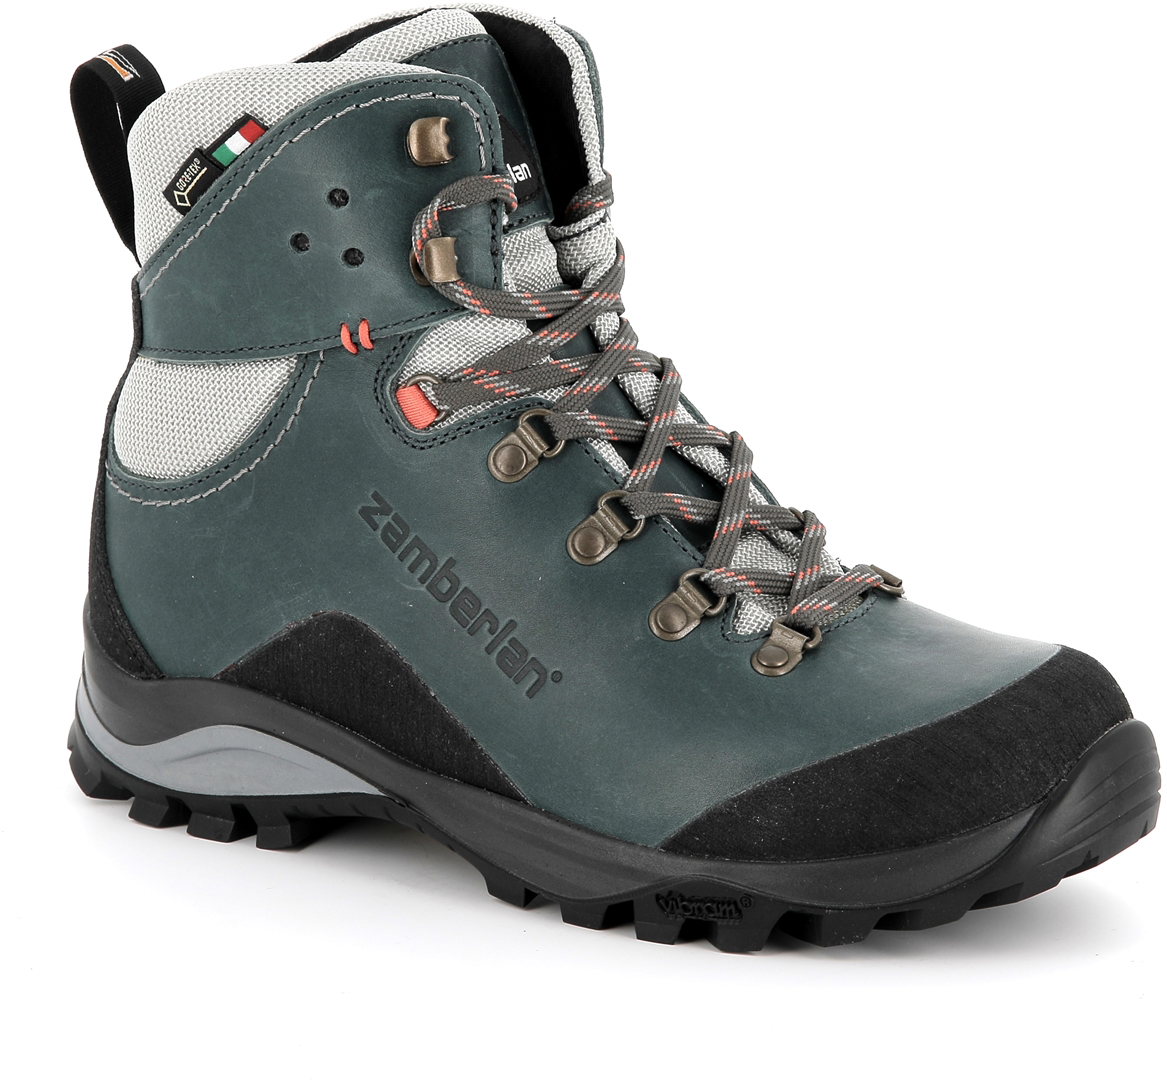 4f020492bf9 Zamberlan 330 Marie Gore-Tex Backpacking Boots - Women's